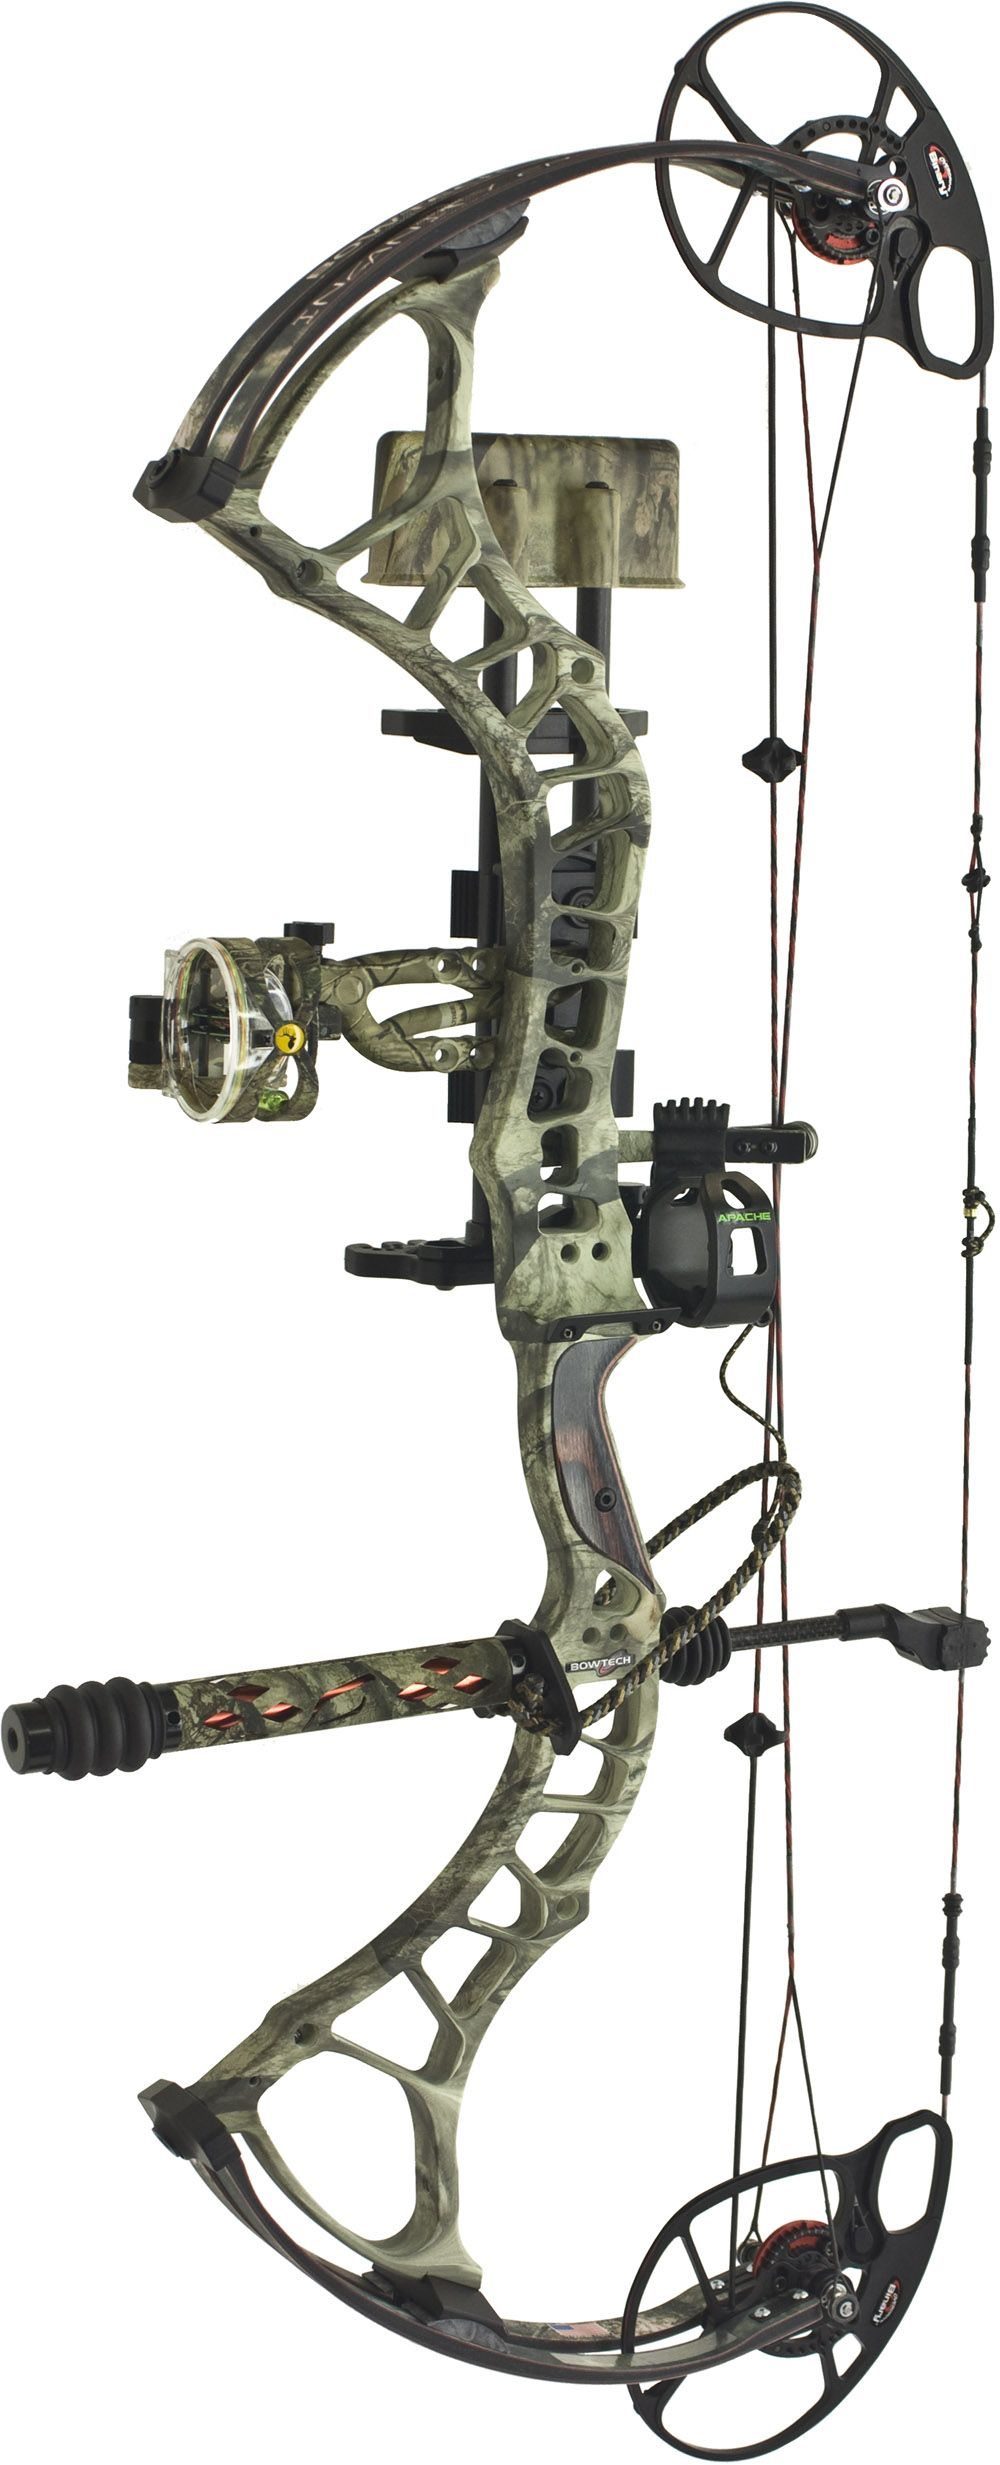 Bowtech Insanity CPX. Bowtech's fastest bow ever at a